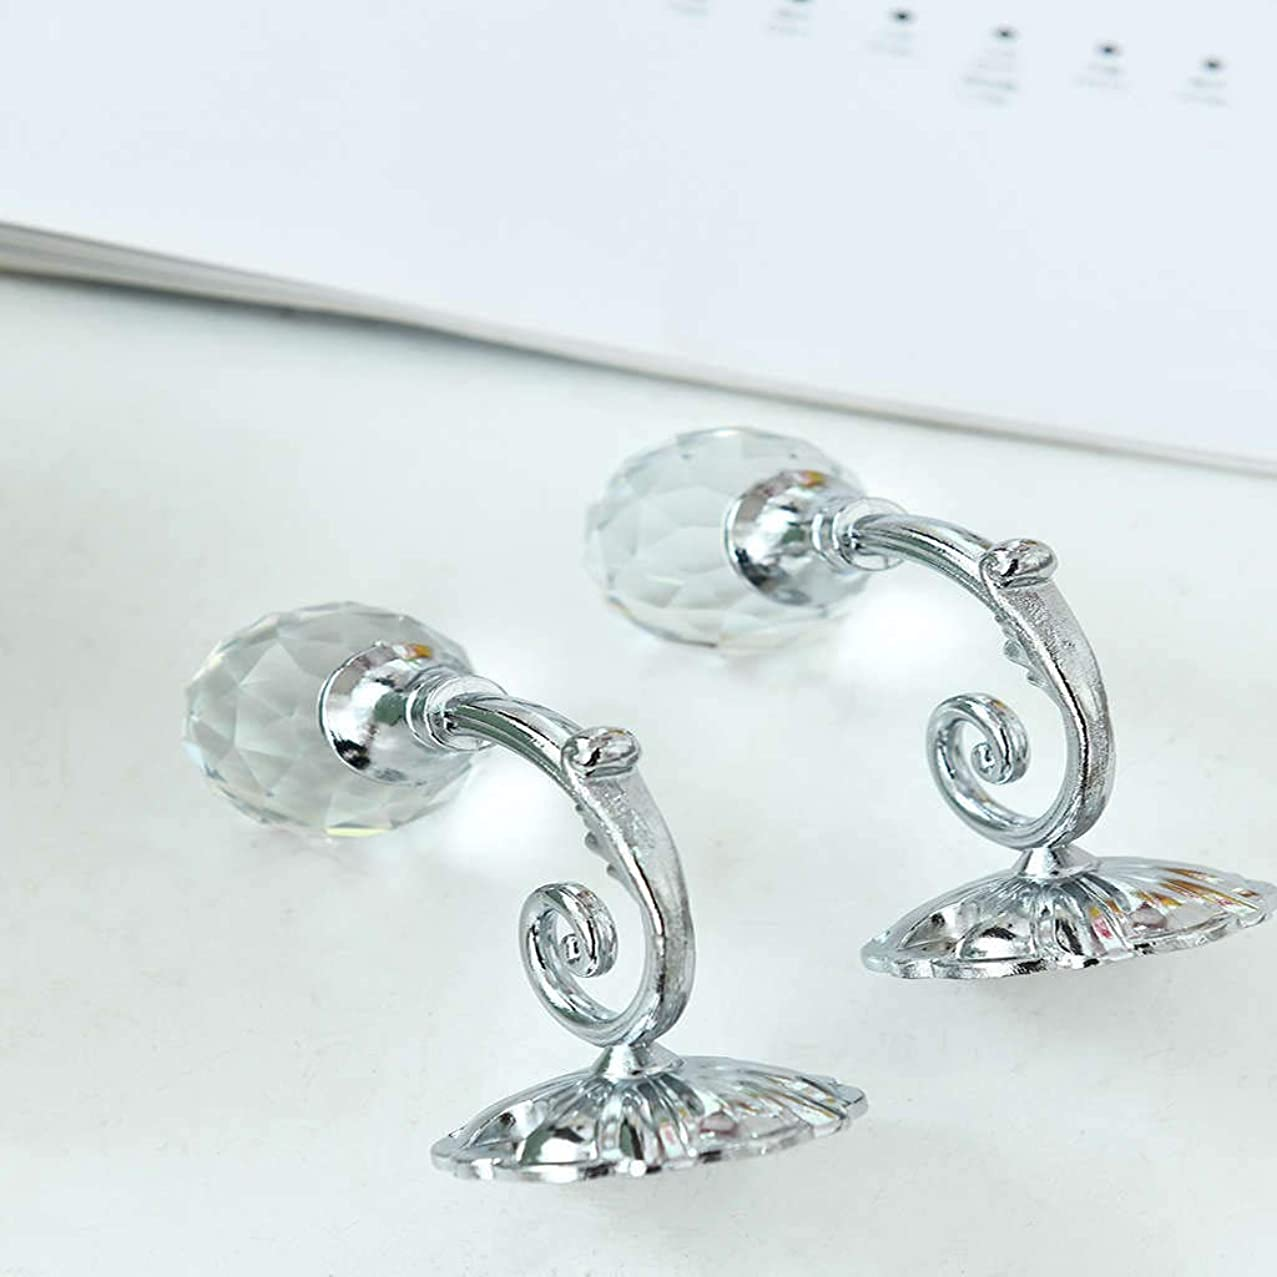 Magnetic Crystal Curtain Hooks,Wall Hooks Hangers Blossom Diamond Clips Stretchy Wire Rope Office Decoration Holdbacks